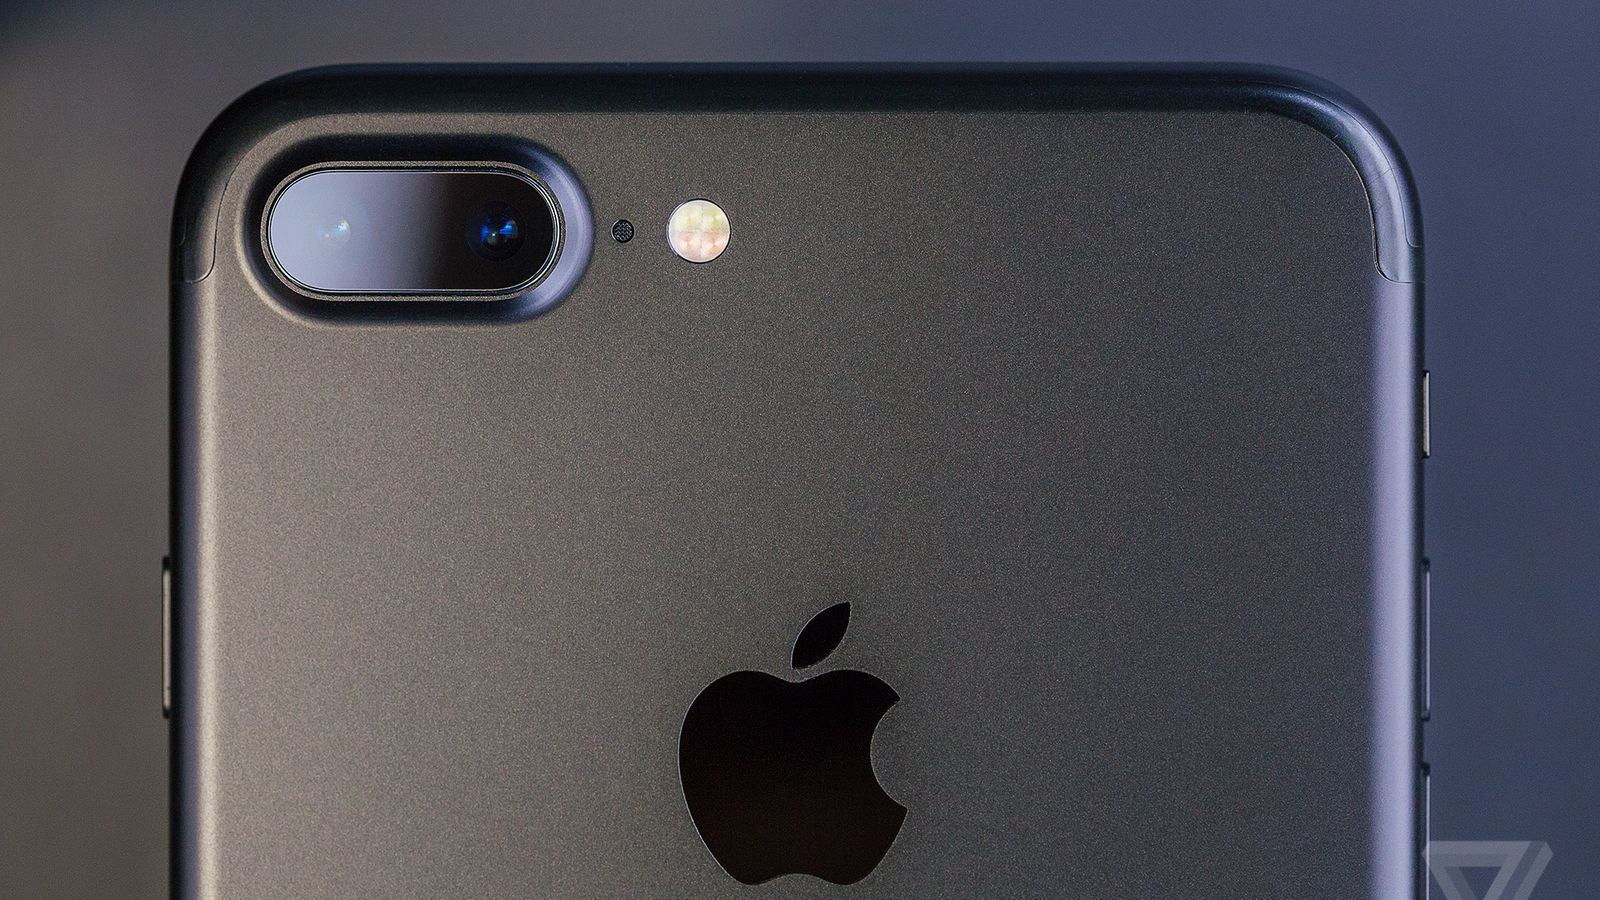 https://goo.gl/Bxrc2w Apple put together a bunch of bite-sized iPhone camera lessons